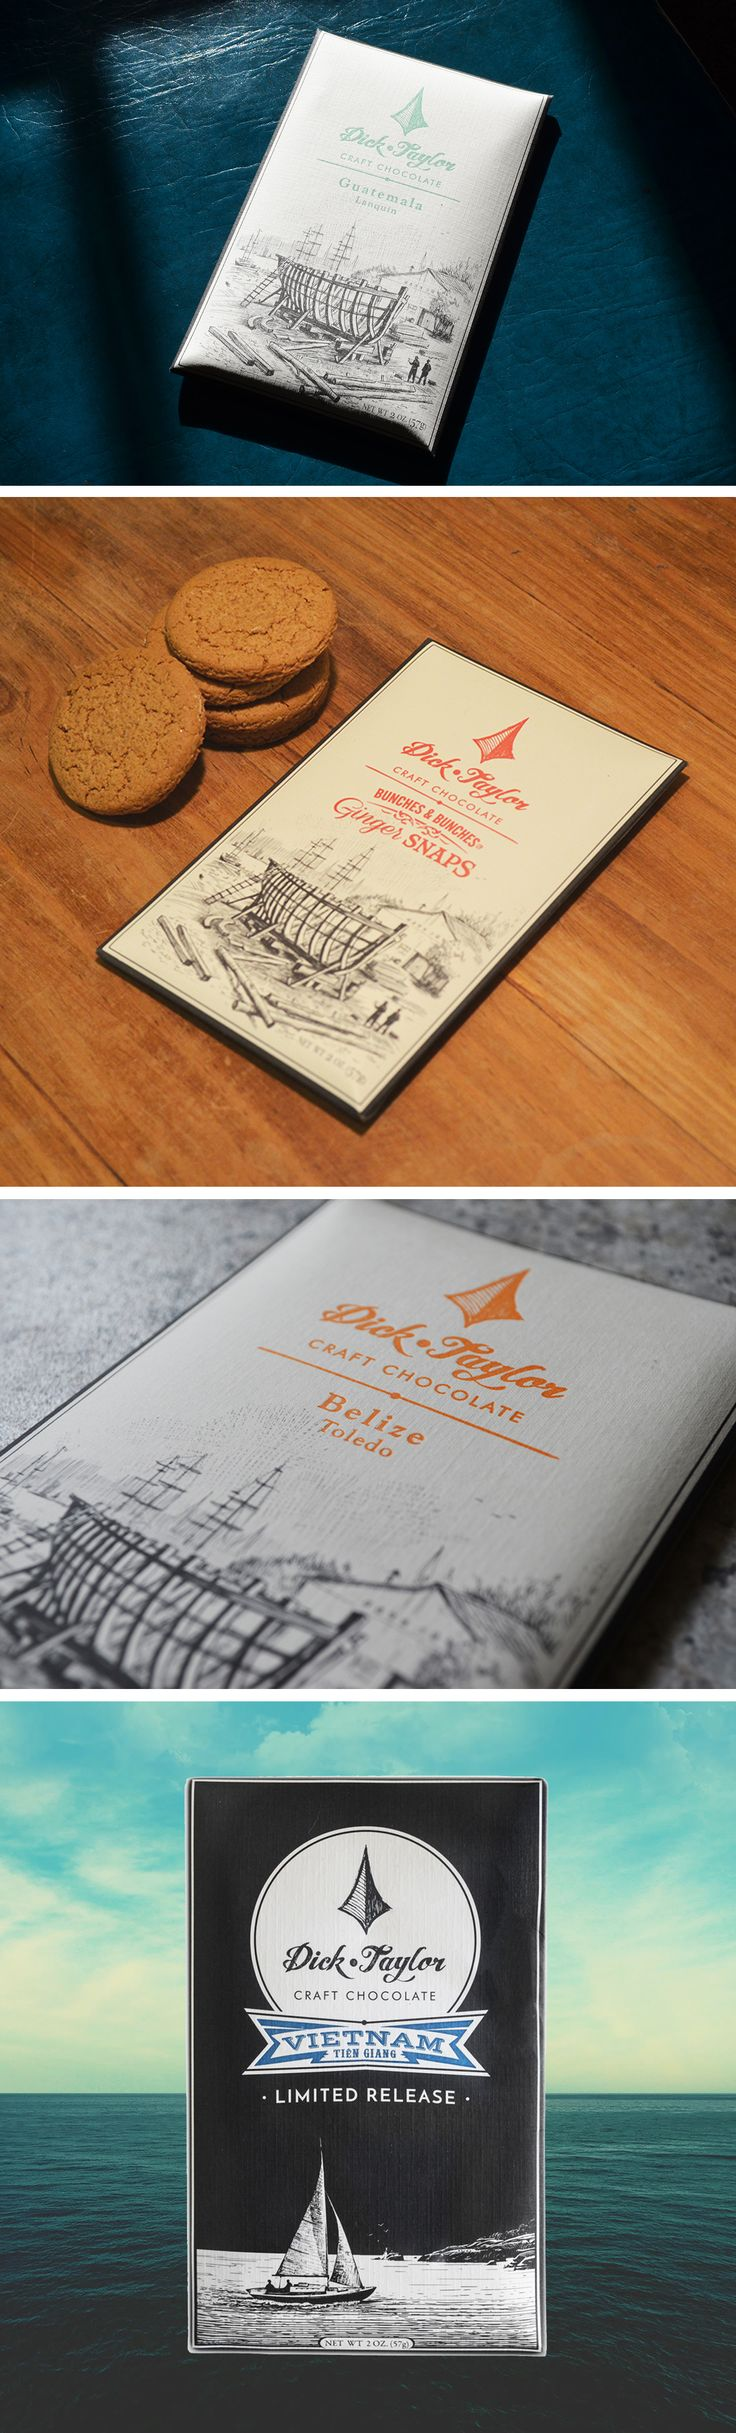 Dick Taylor Craft Chocolate from The Chocolate Bar, New Zealand